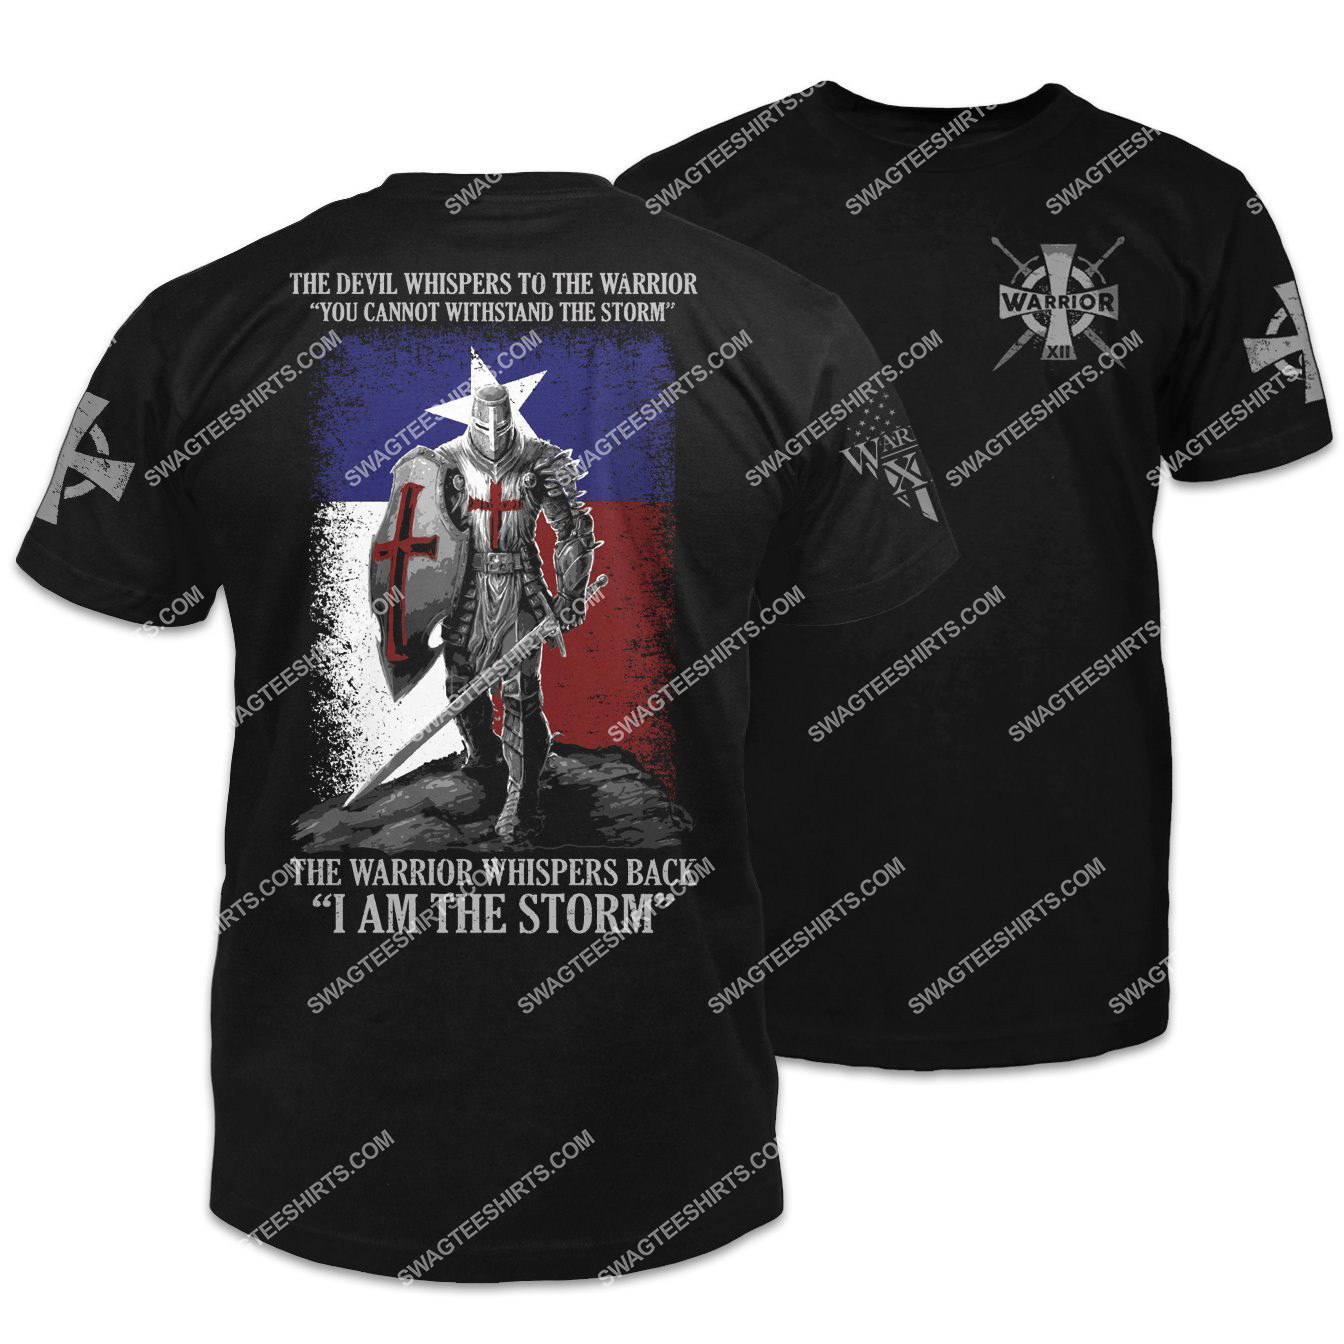 the devil whispers to the warrior you cannot withstand the storm knights templar shirt 1 - Copy (3)